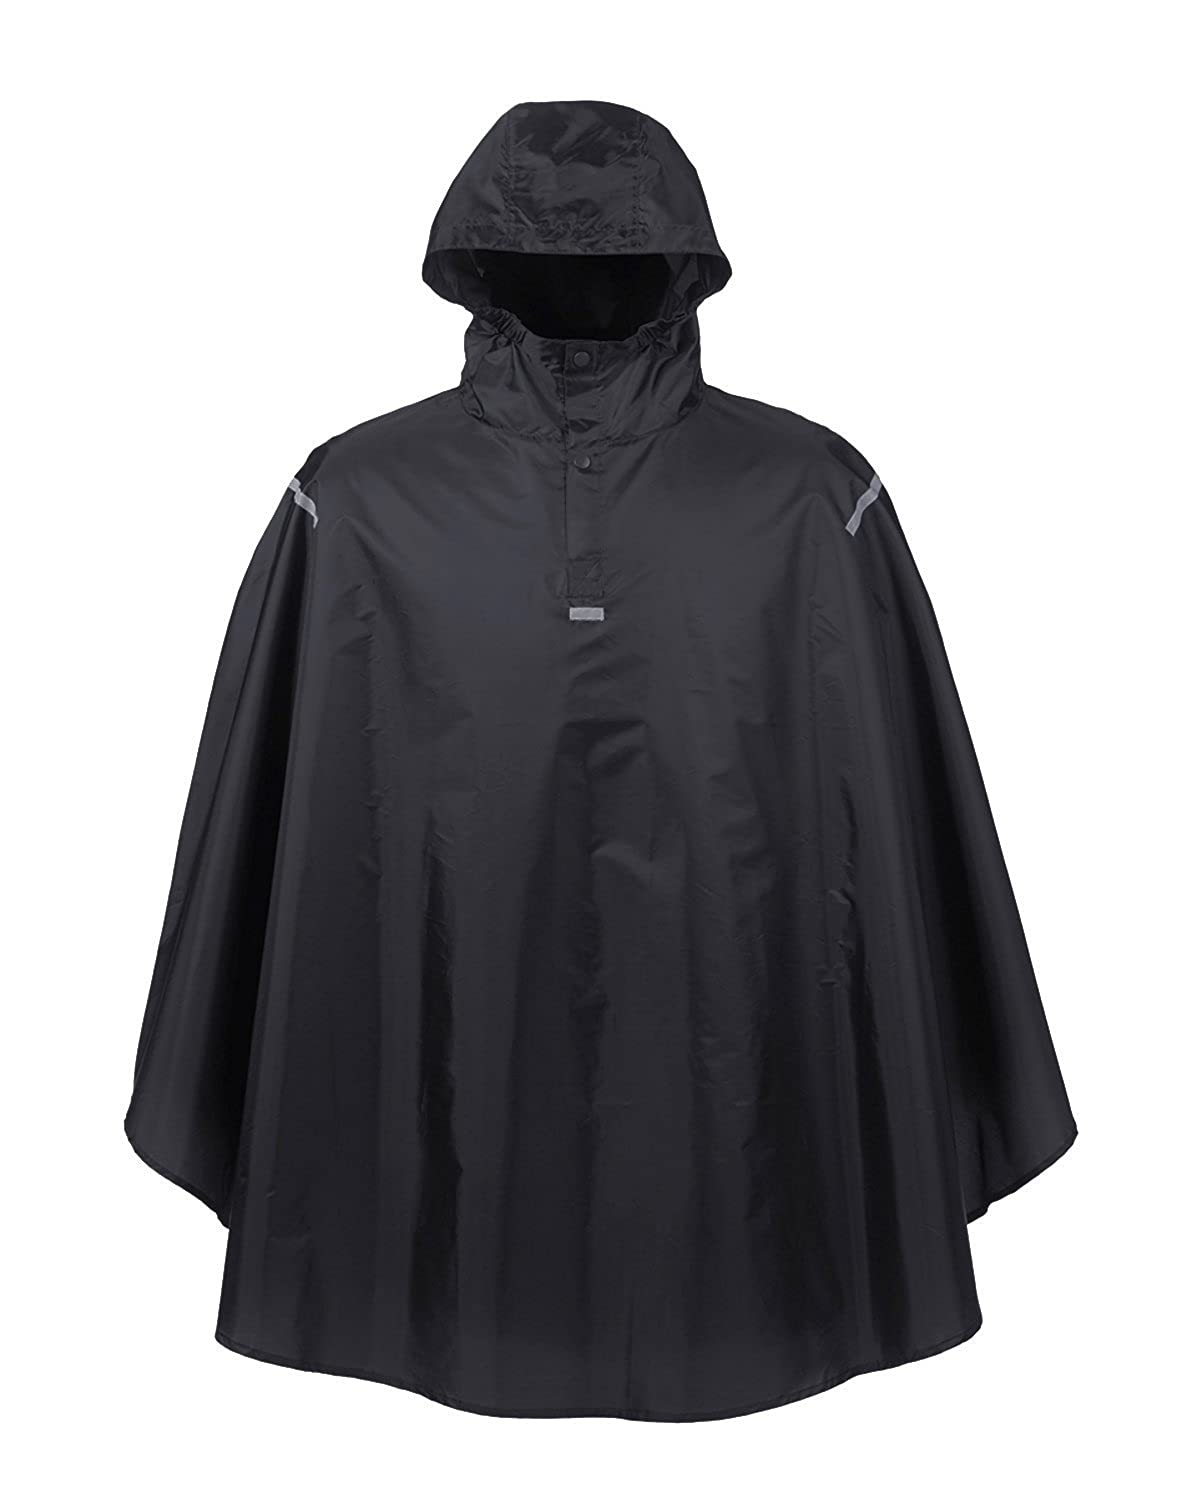 PF1040 ZUZ-PF1040-OS-Black ZUZIFY Waterproof Packable Rain Poncho With Reflective Details